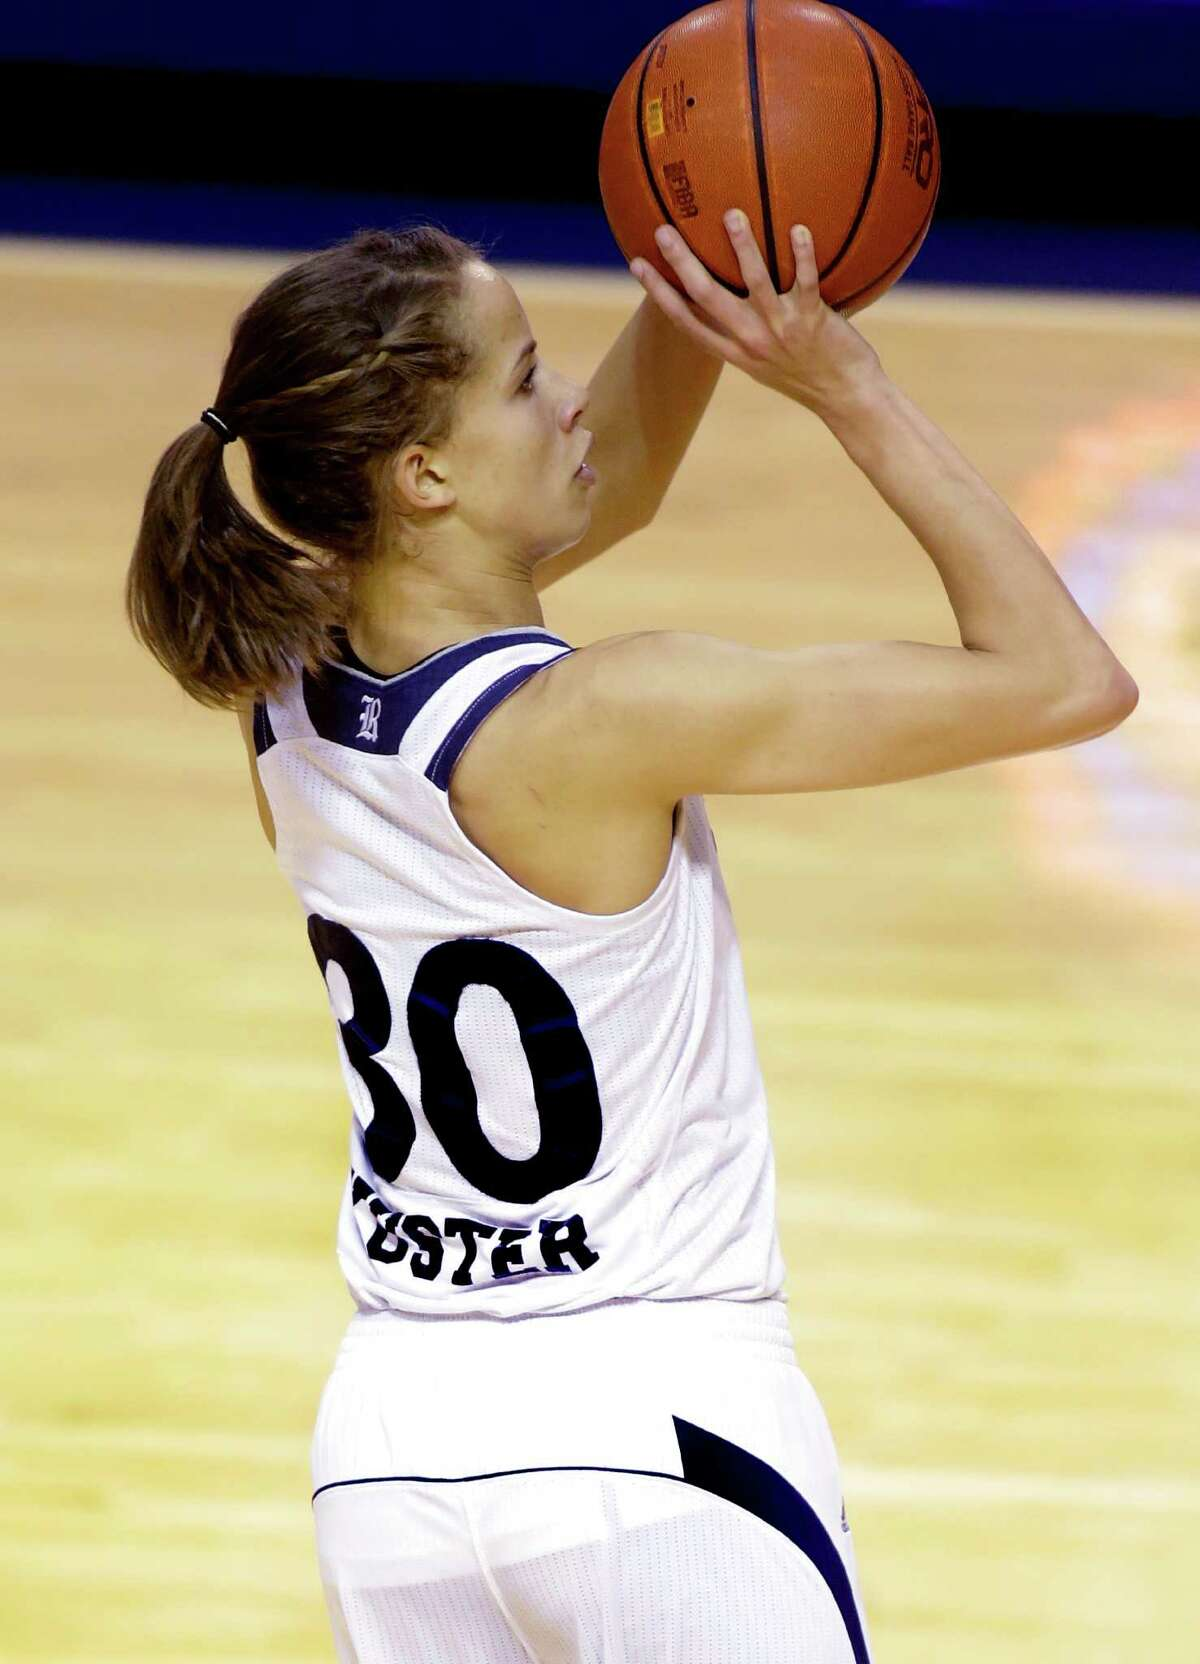 Jessica Kuster finished her college career as one of just 145 players in NCAA Division I history to record at least 2,000 career points and 1,000 career rebounds.